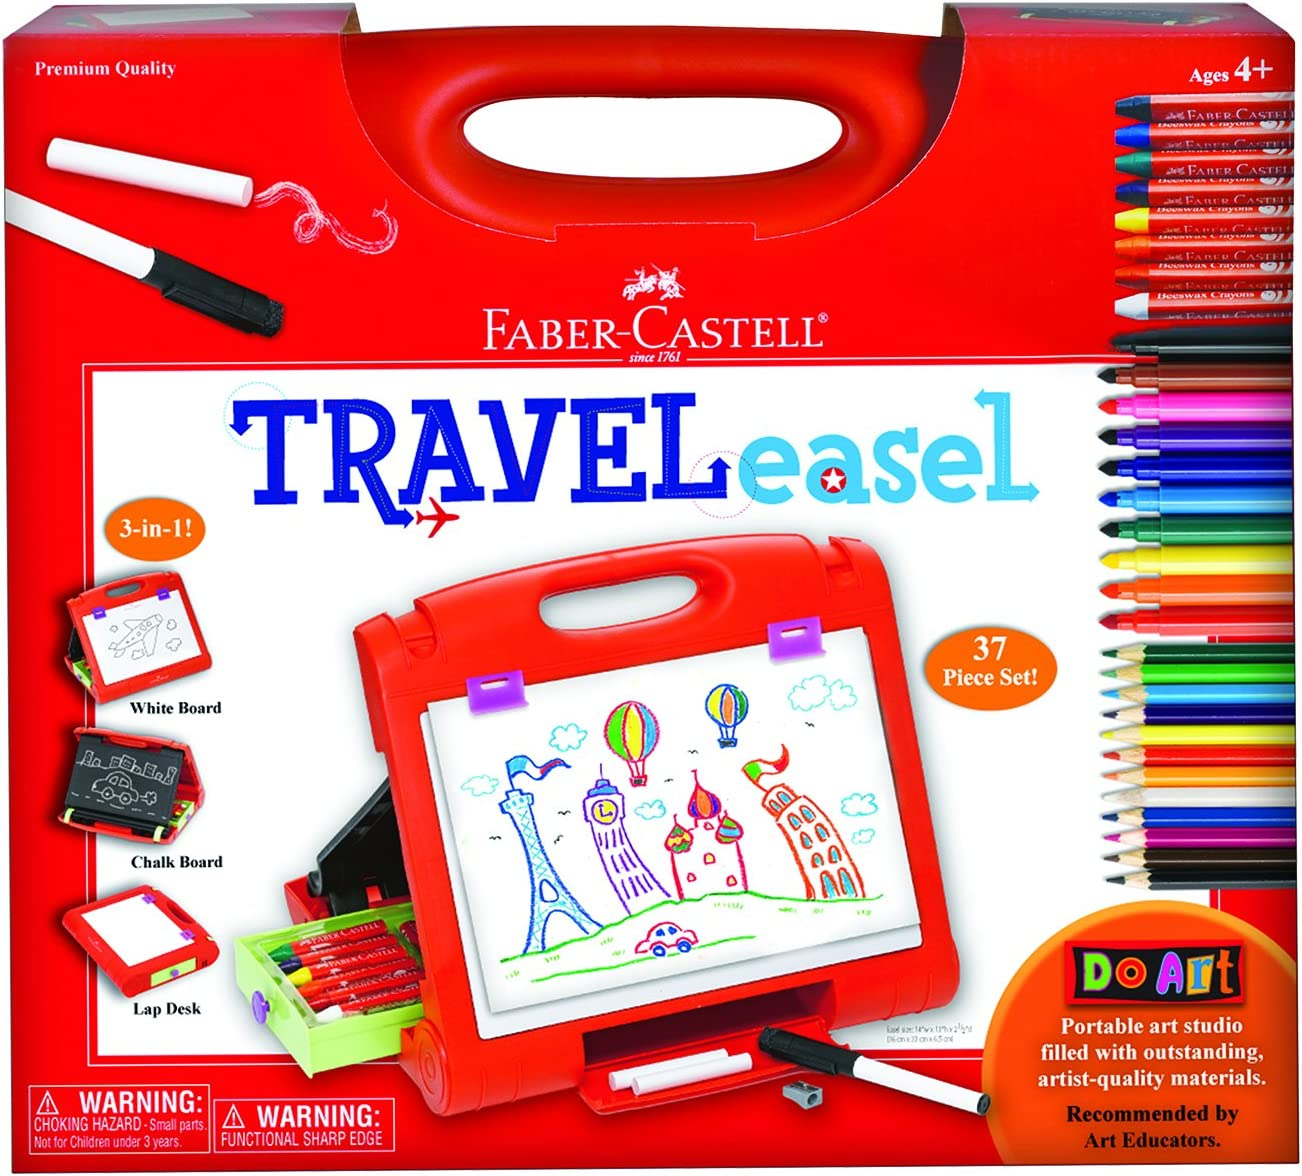 Faber-Castell Do Art Travel Easel - Portable Art Kit for Kids